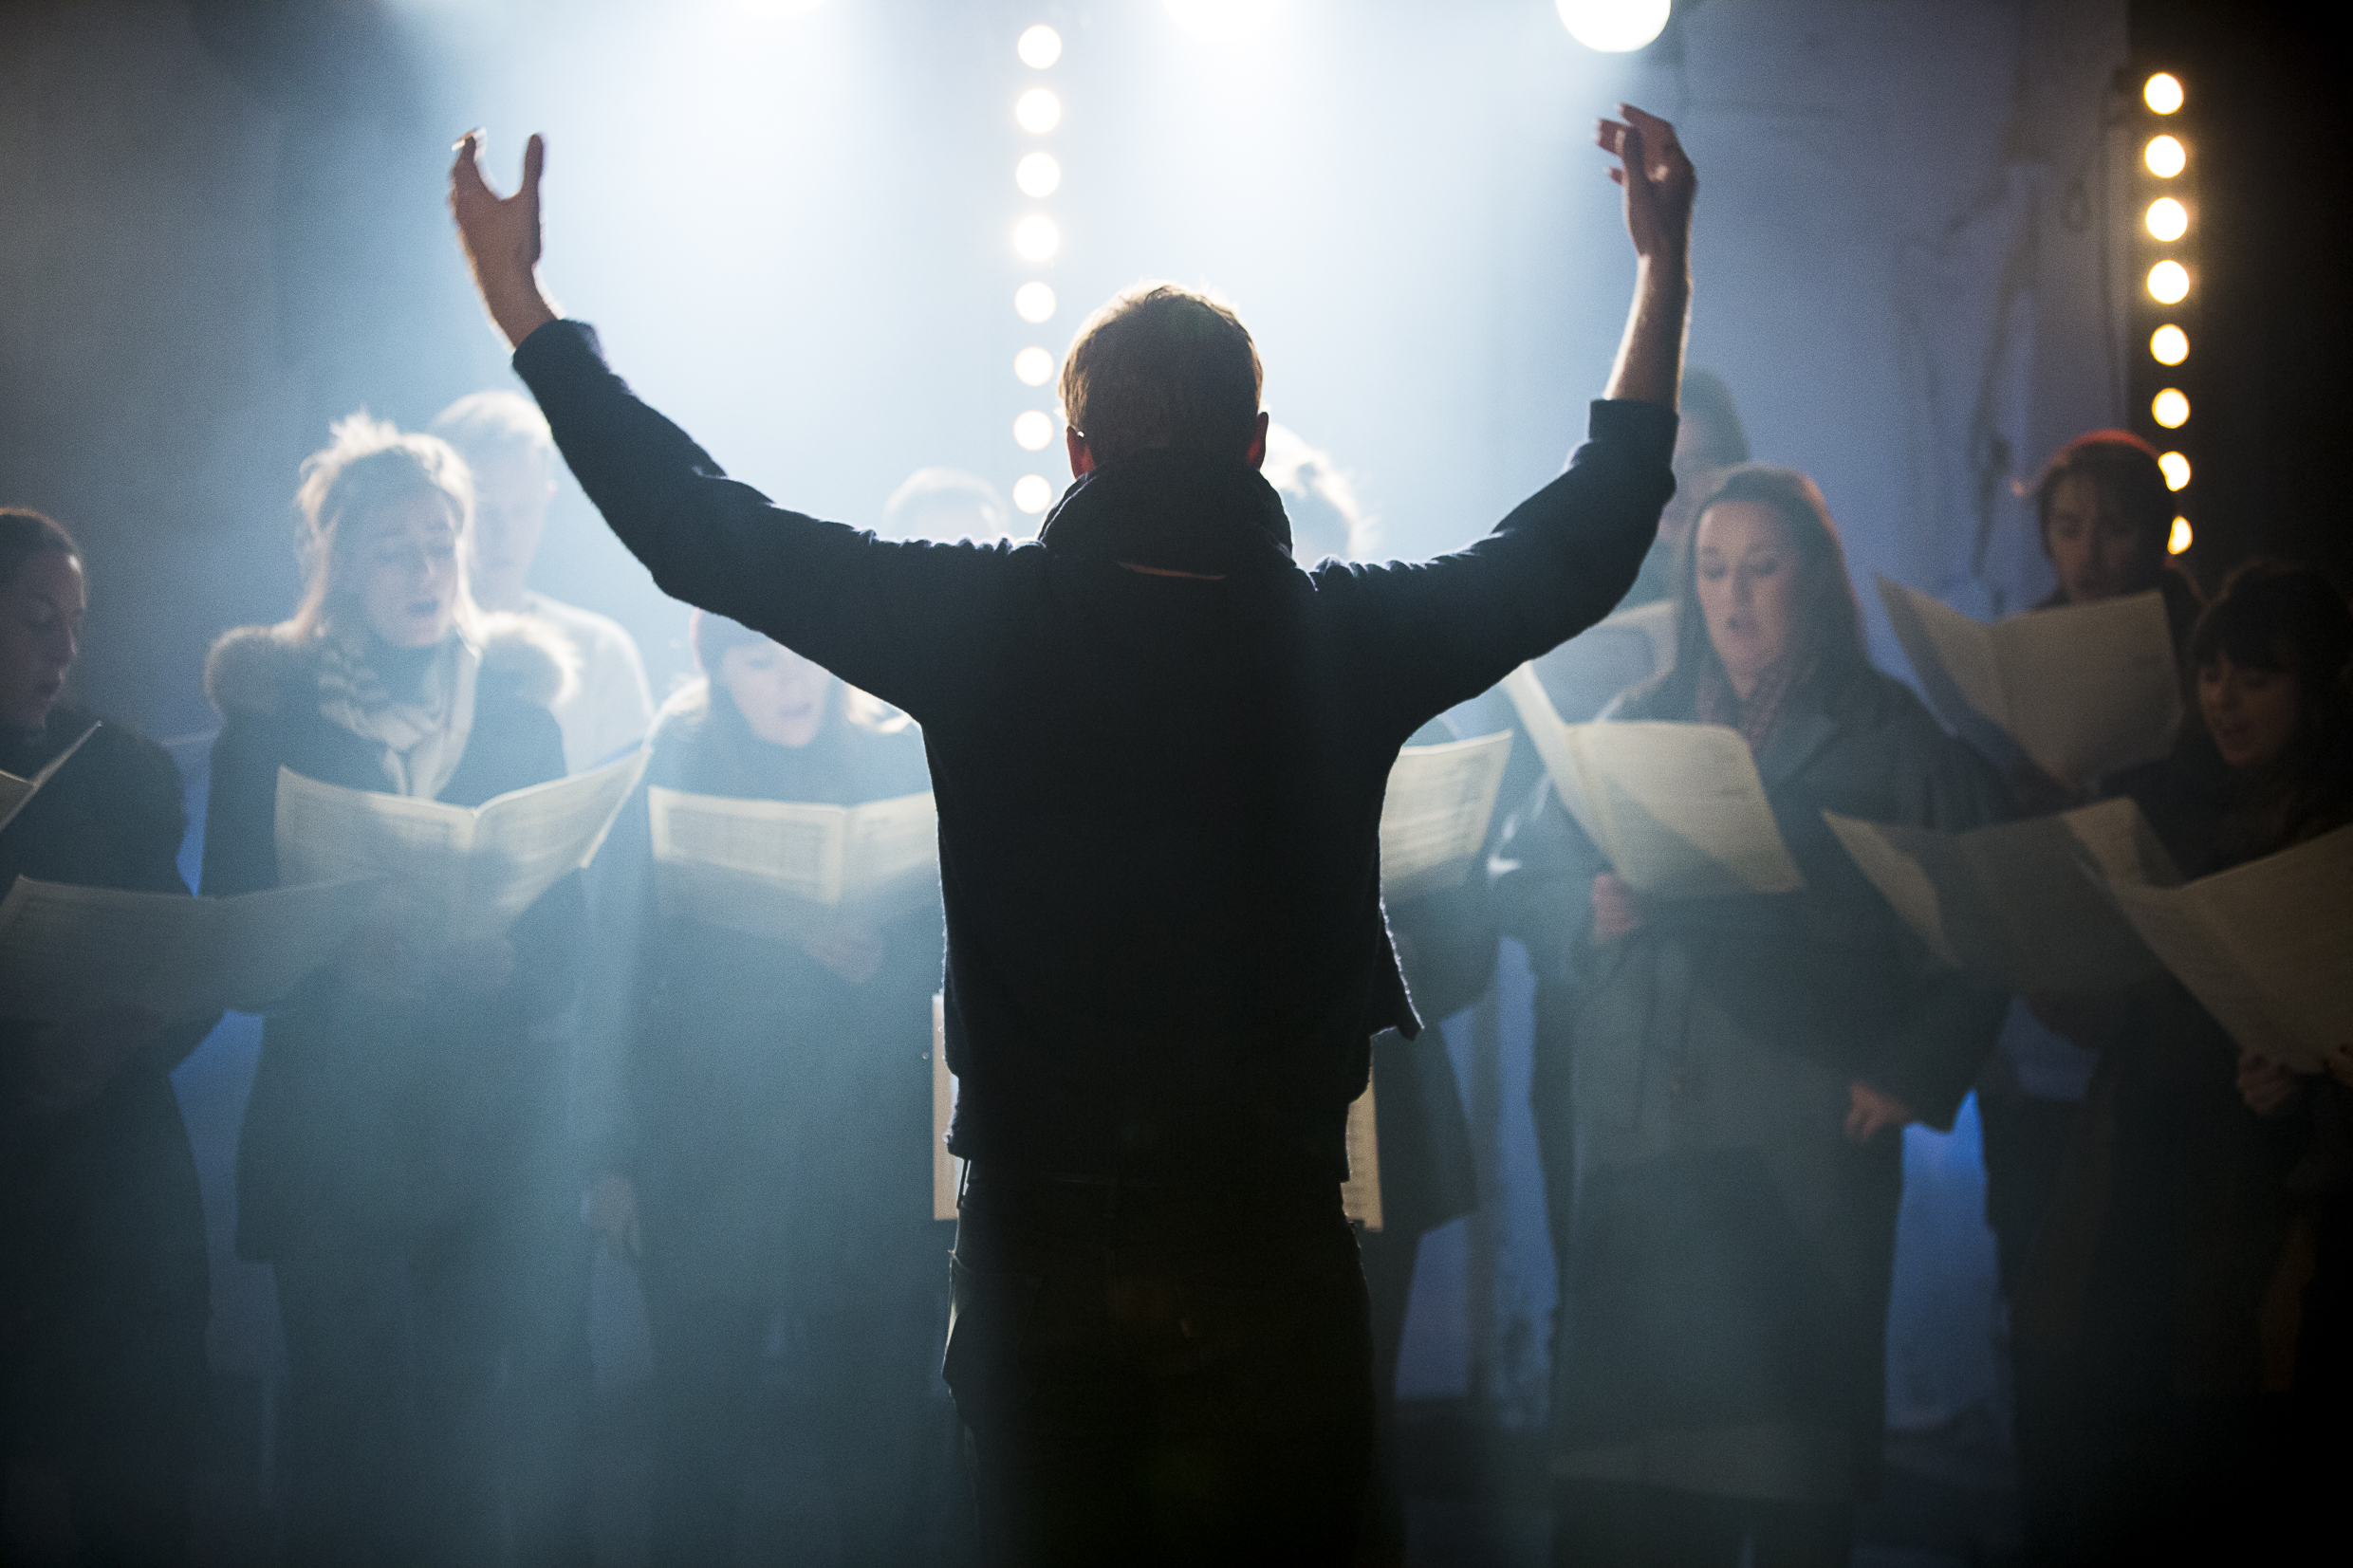 Handel Remixed - CLF Art Cafe, PeckhamFriday 12 April, 7pm, £20 Baroque music remixed for live performance in a Peckham nightclub: Festival Voices reimagines Handel's Dixit Dominus (composed in 1707) with 14 singers, baroque ensemble and DJ. Watch the trailer on YouTube.